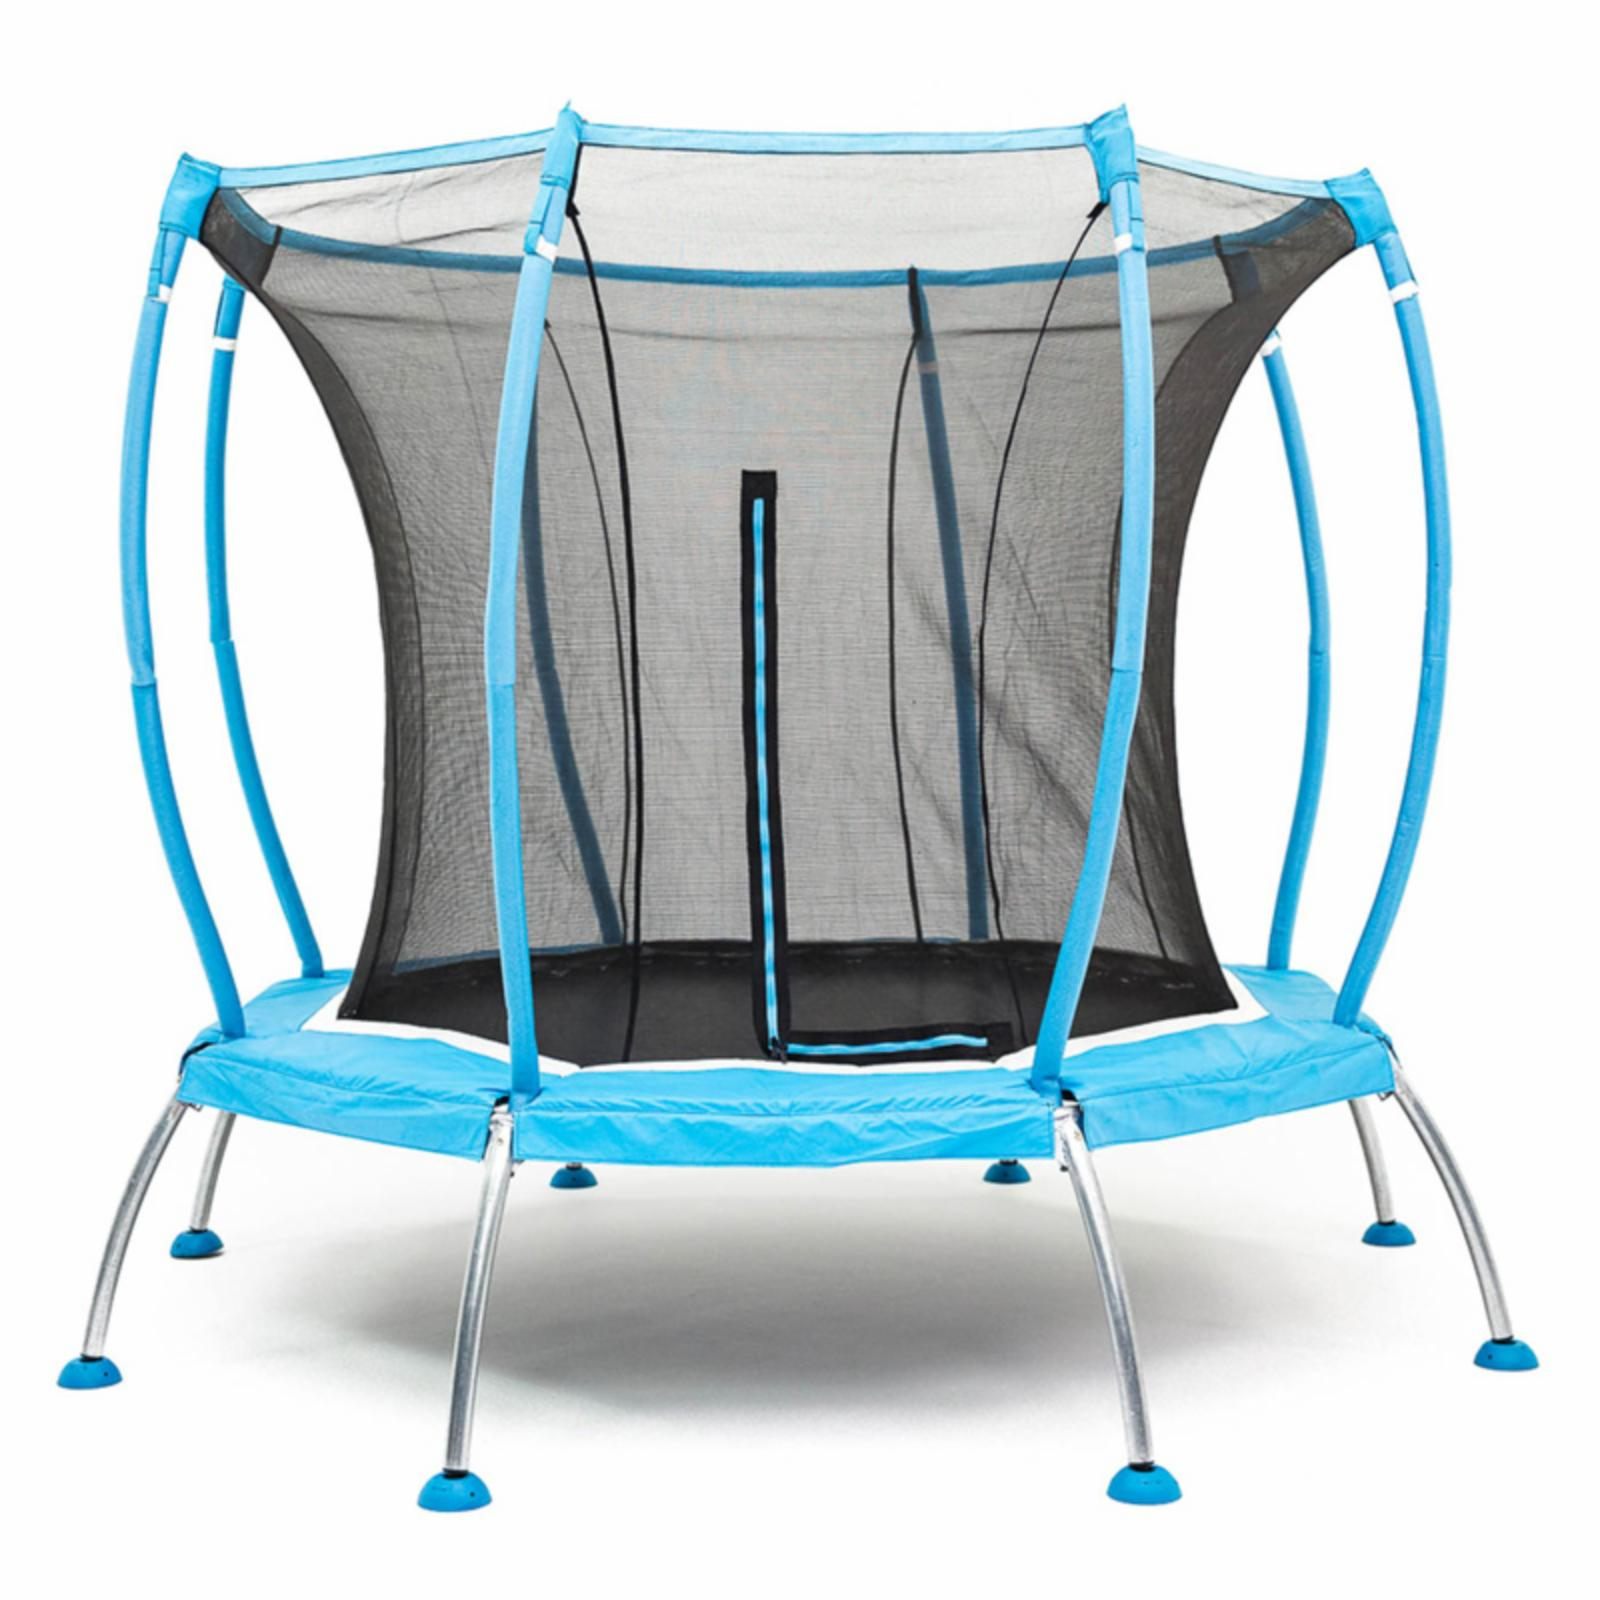 SkyBound Atmos 8 ft. Trampoline with Full Safety Net Enclosure System - SB-T08ATM02